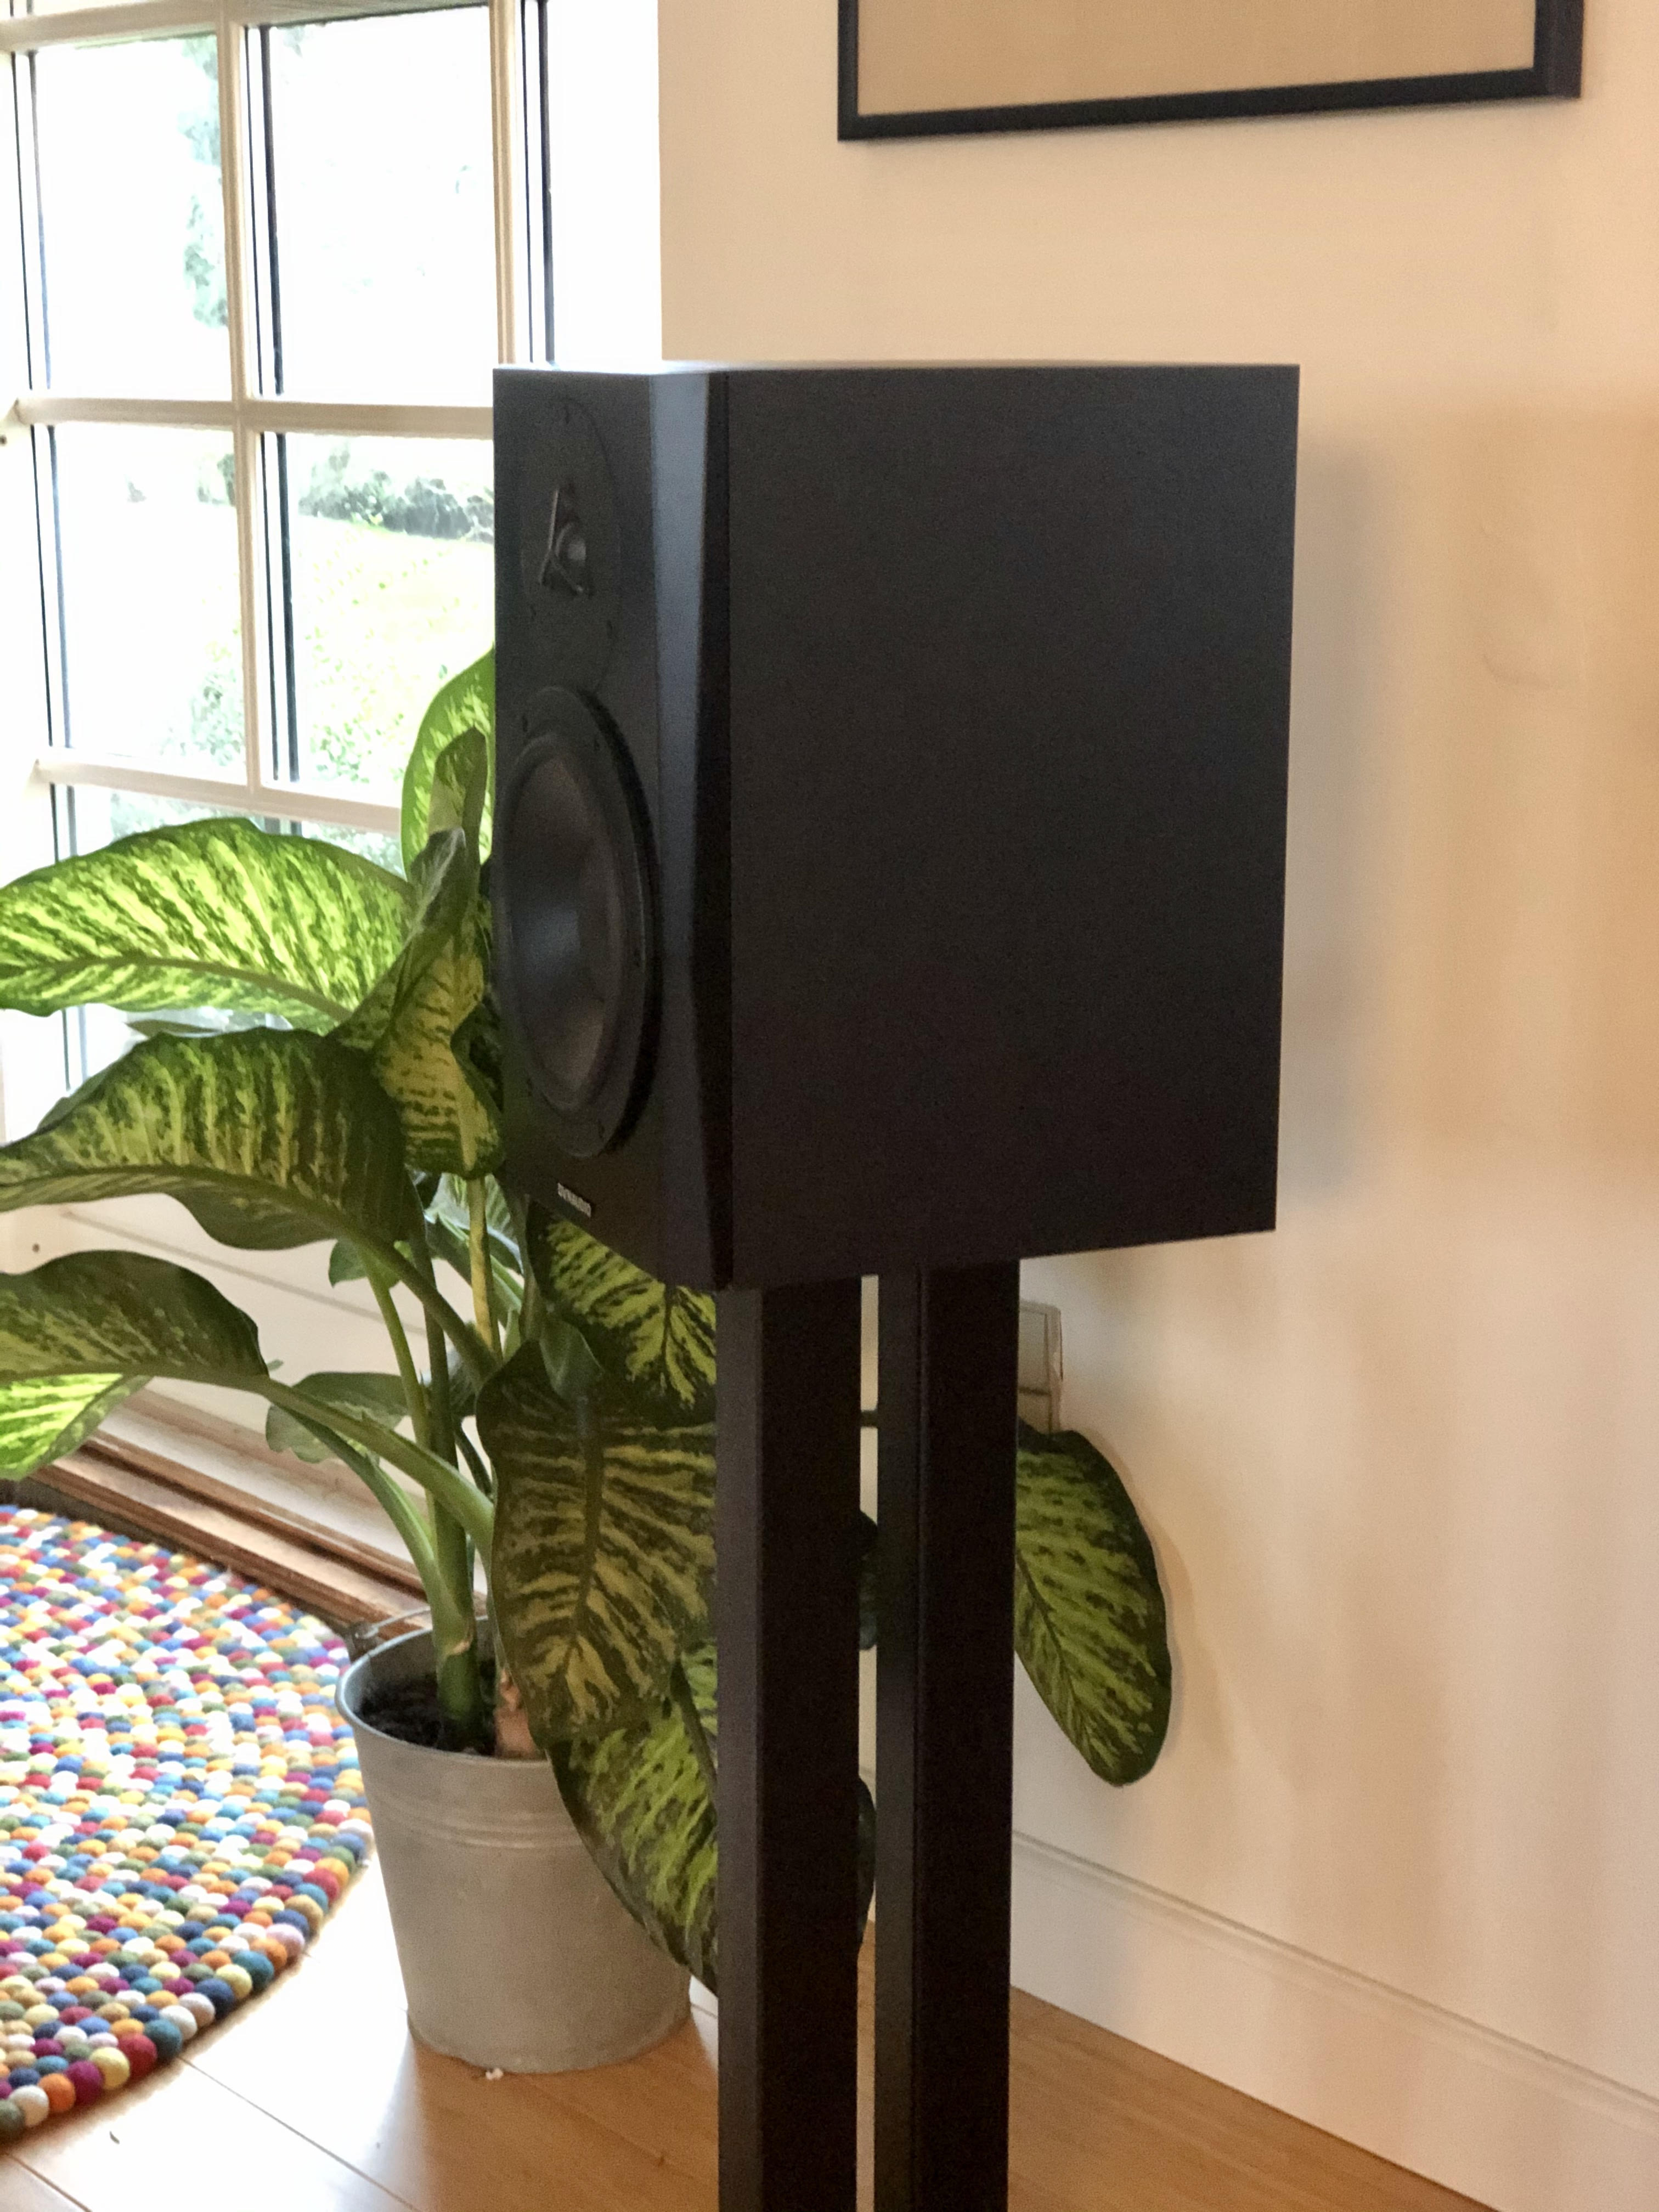 Dynaudio Lyd 8 on stand